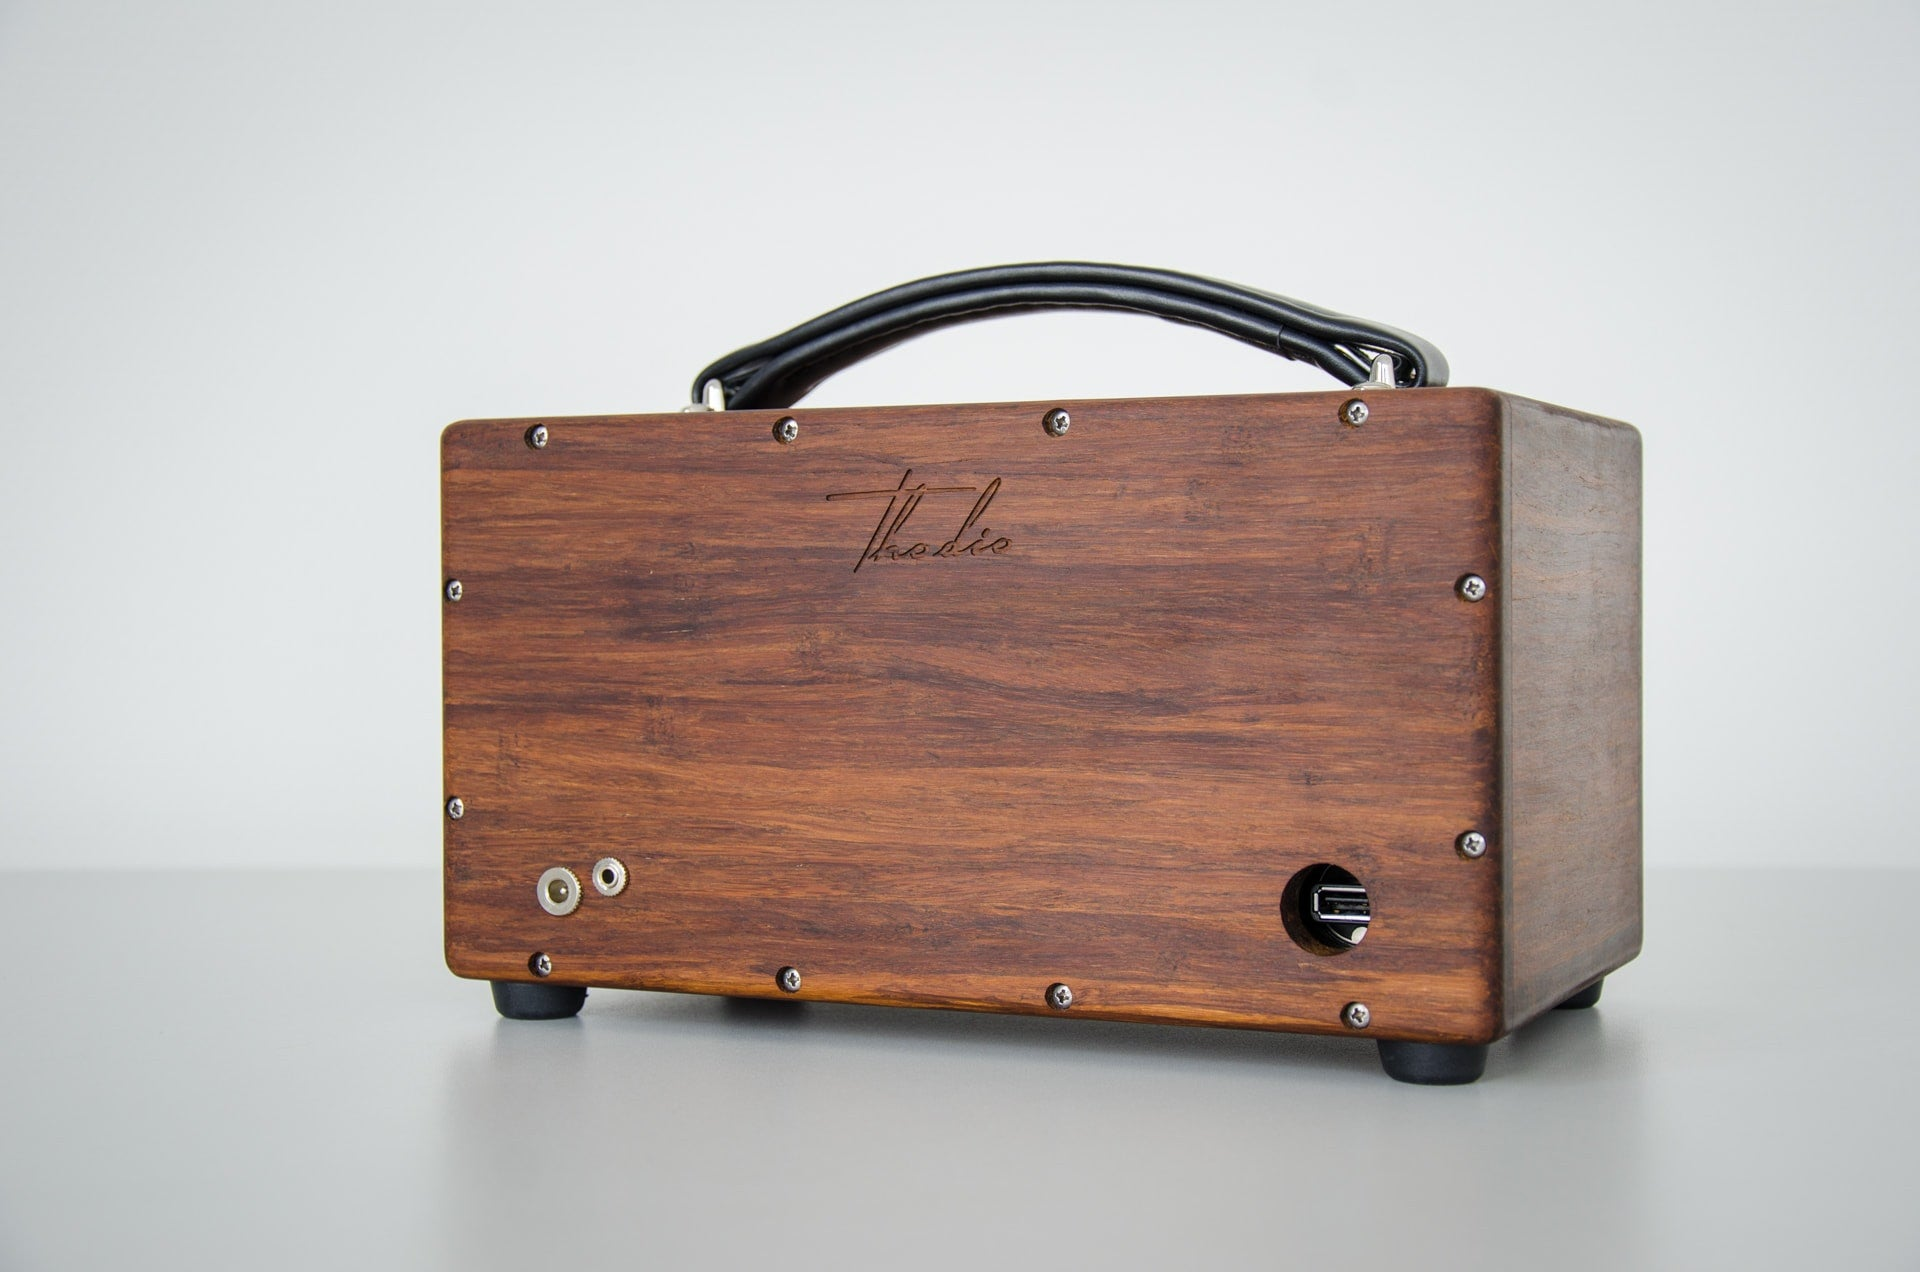 Thodio iBox™ Mini High Density Chocolate Bamboo